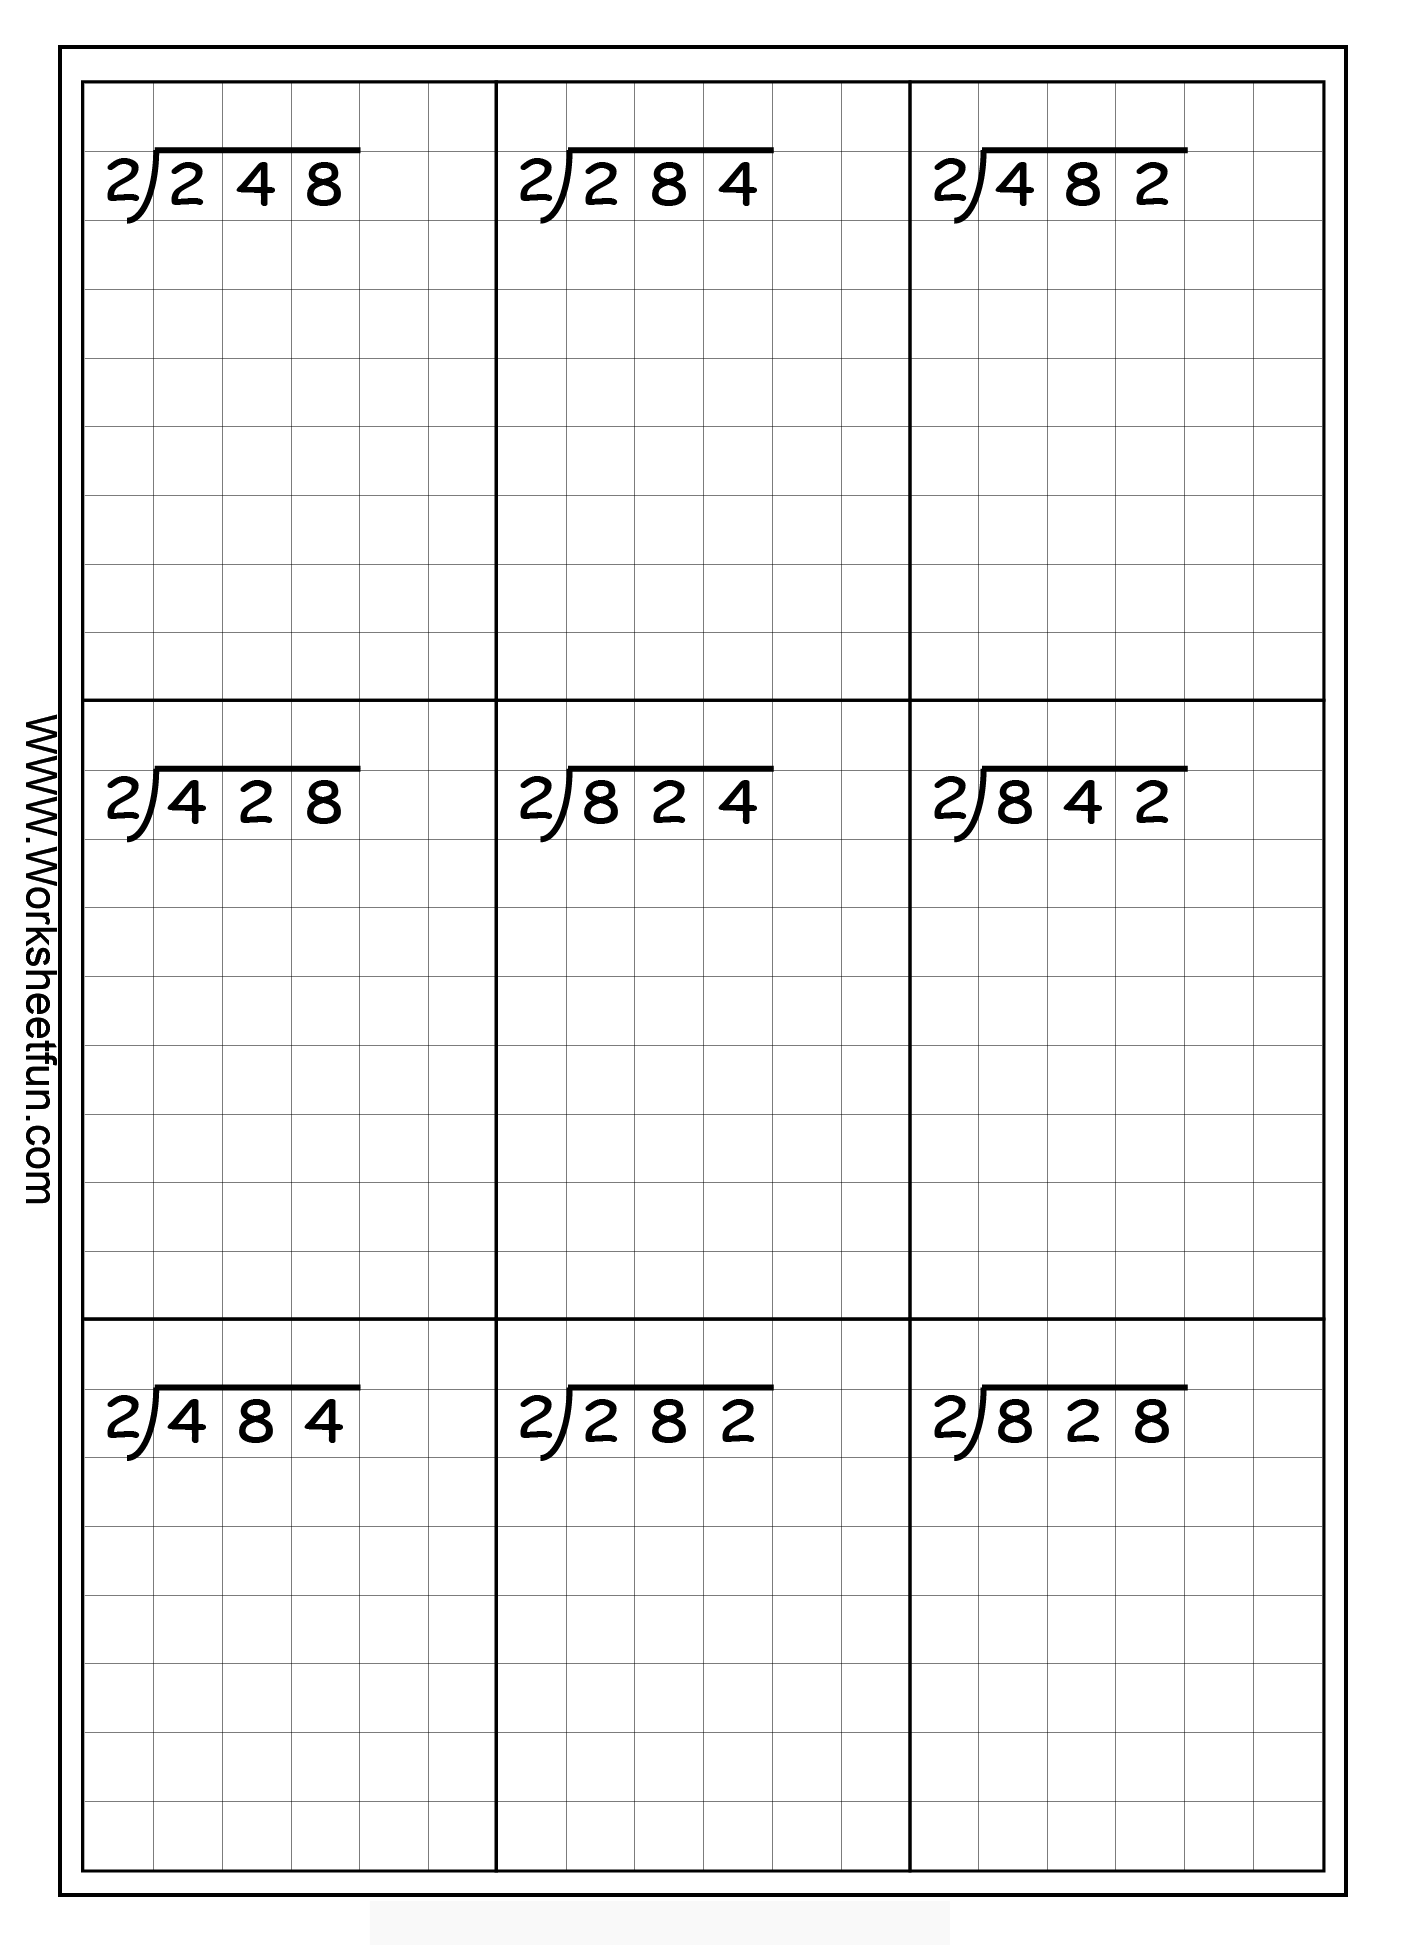 math worksheet : 1000 images about division worksheets on pinterest  division  : Beginner Division Worksheets